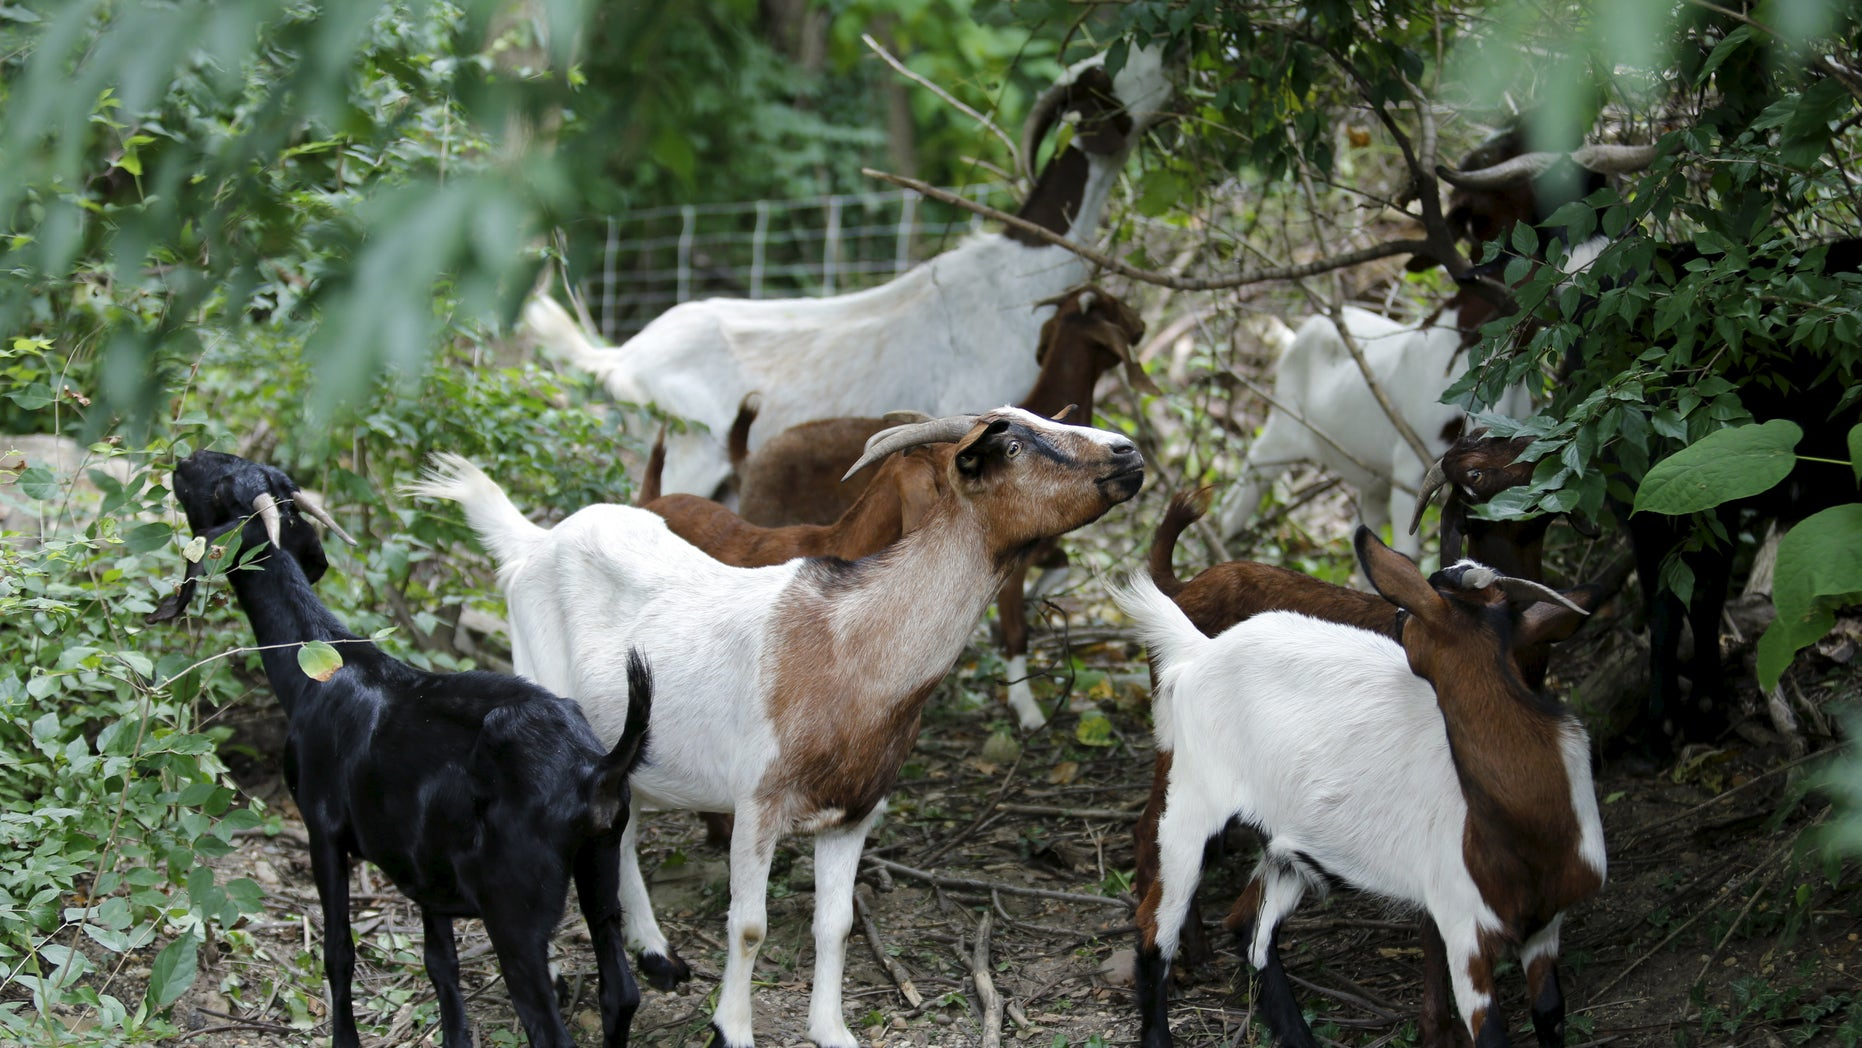 Goats grazing. (Reuters)